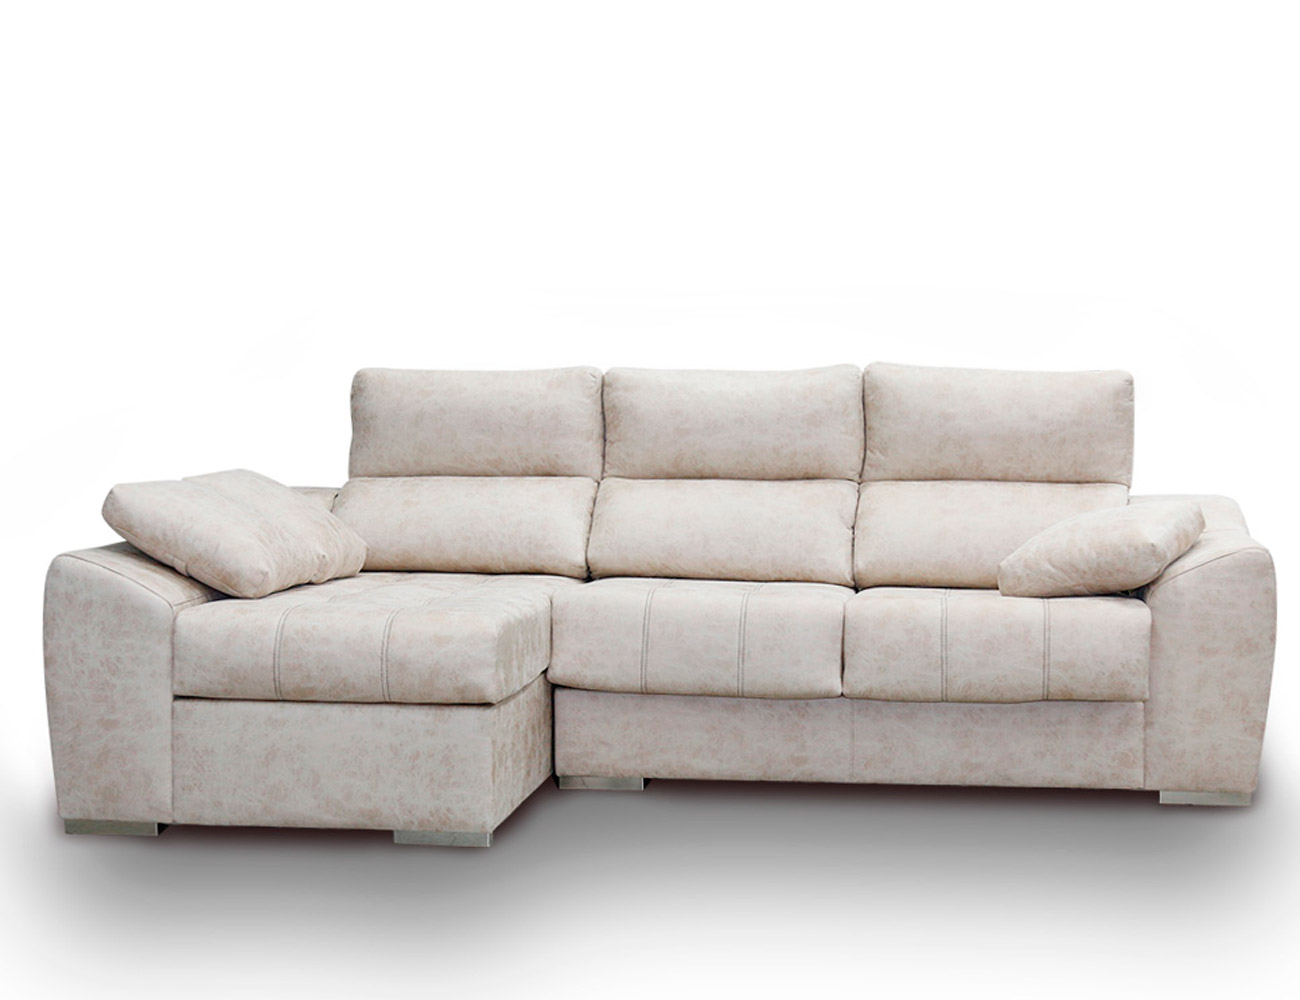 Sofa chaiselongue anti manchas beig blanco8